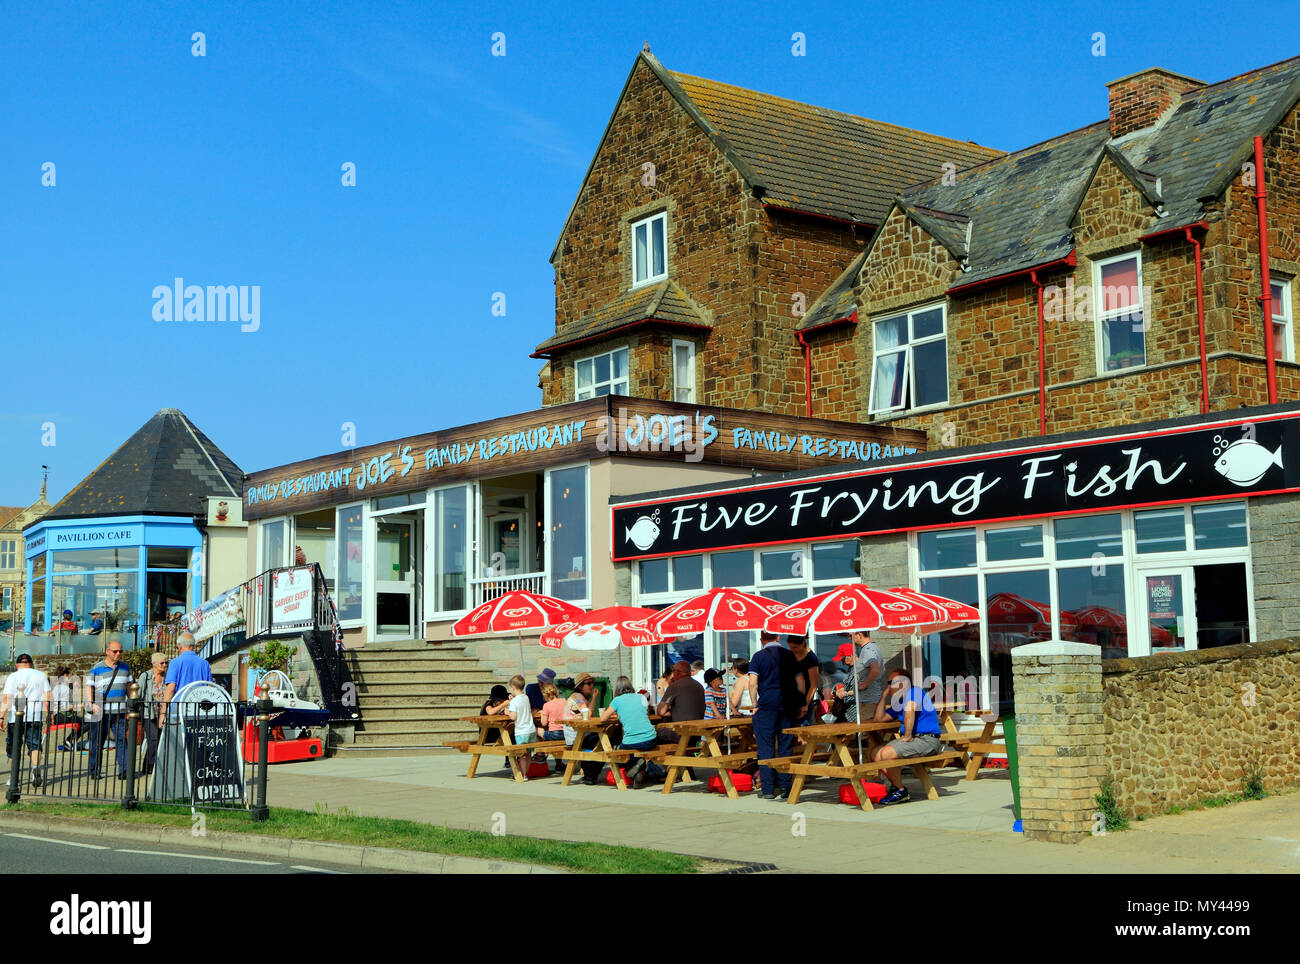 Hunstanton, fish shop cafe, restautants, holidaymakers, seaside resort, Five Frying Fish cafe, Norfolk, UK Stock Photo